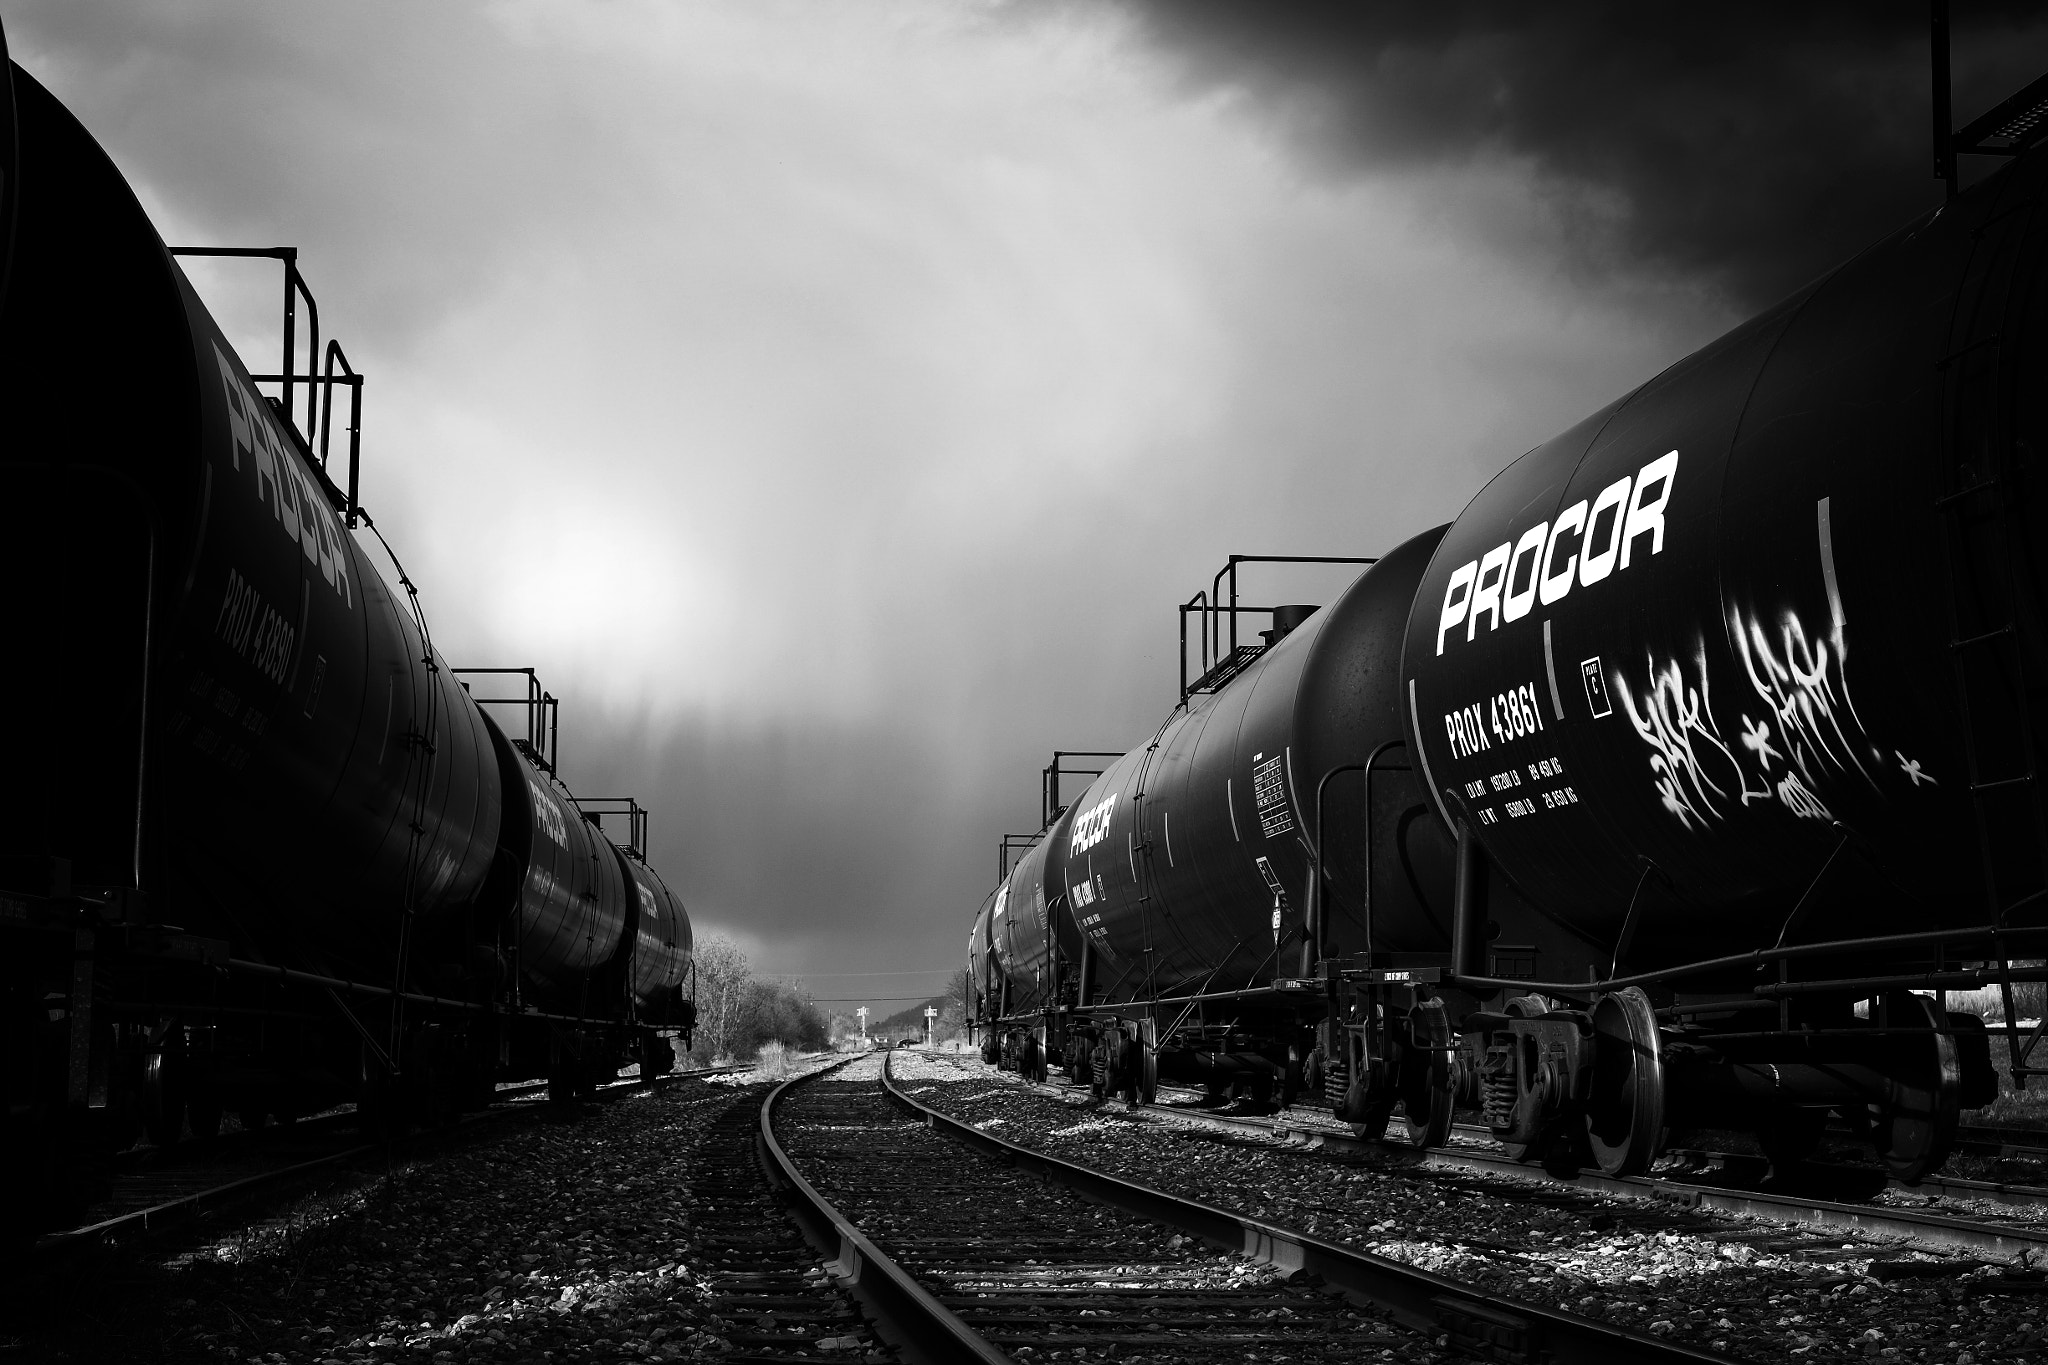 Photograph Down the Track by Morten Byskov on 500px